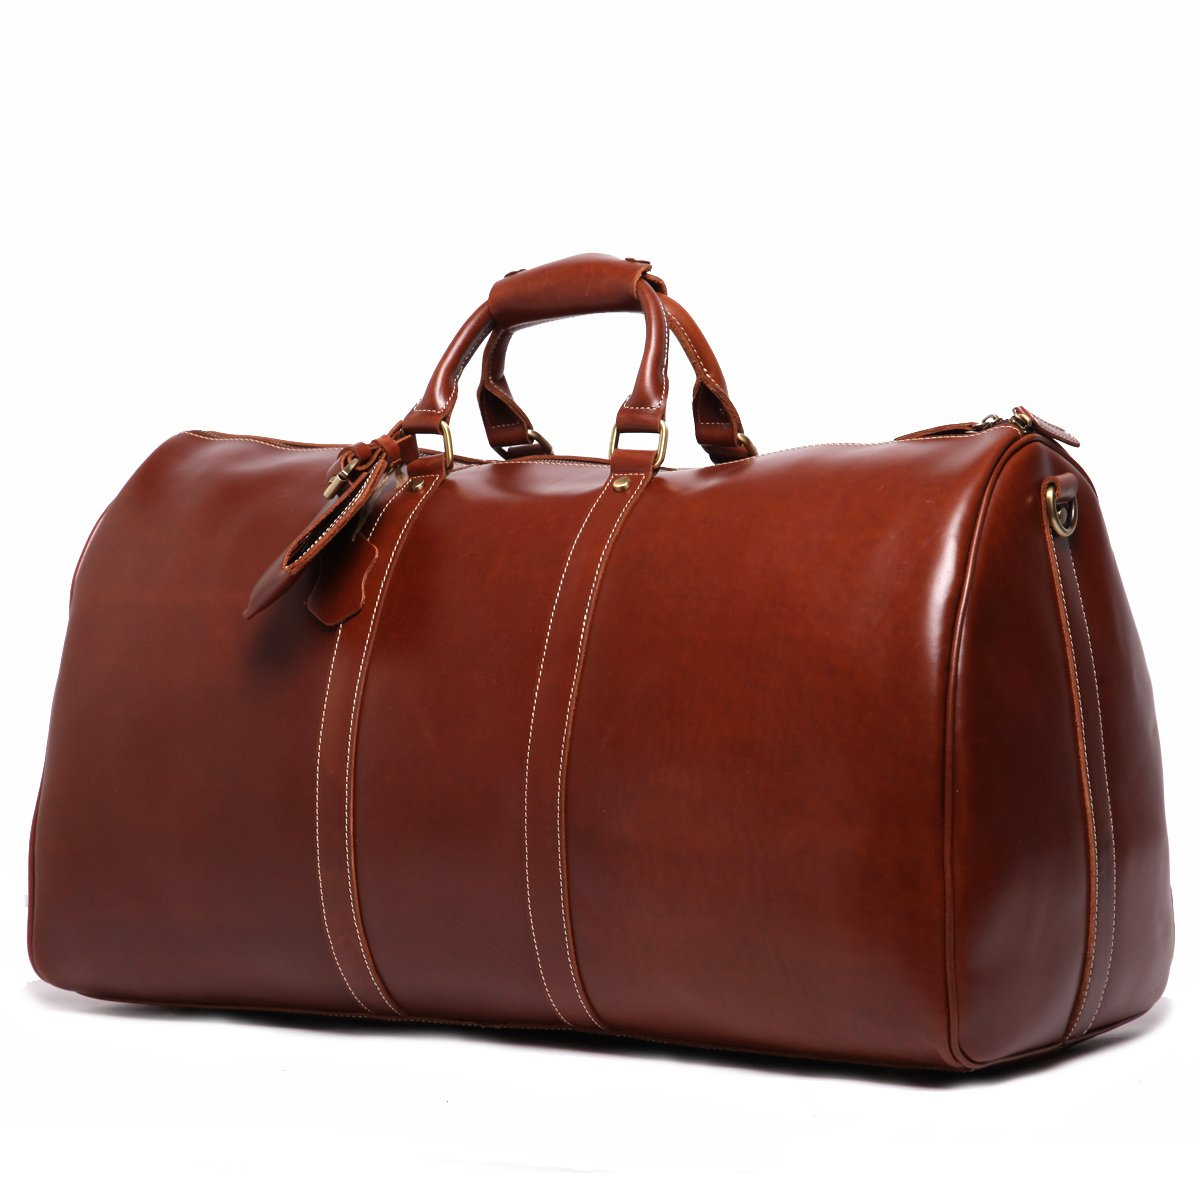 925b0a0b064 Leathario Mens Genuine Leather Overnight Travel Duffle Overnight Weekender  Bag Luggage Carry On Airplane